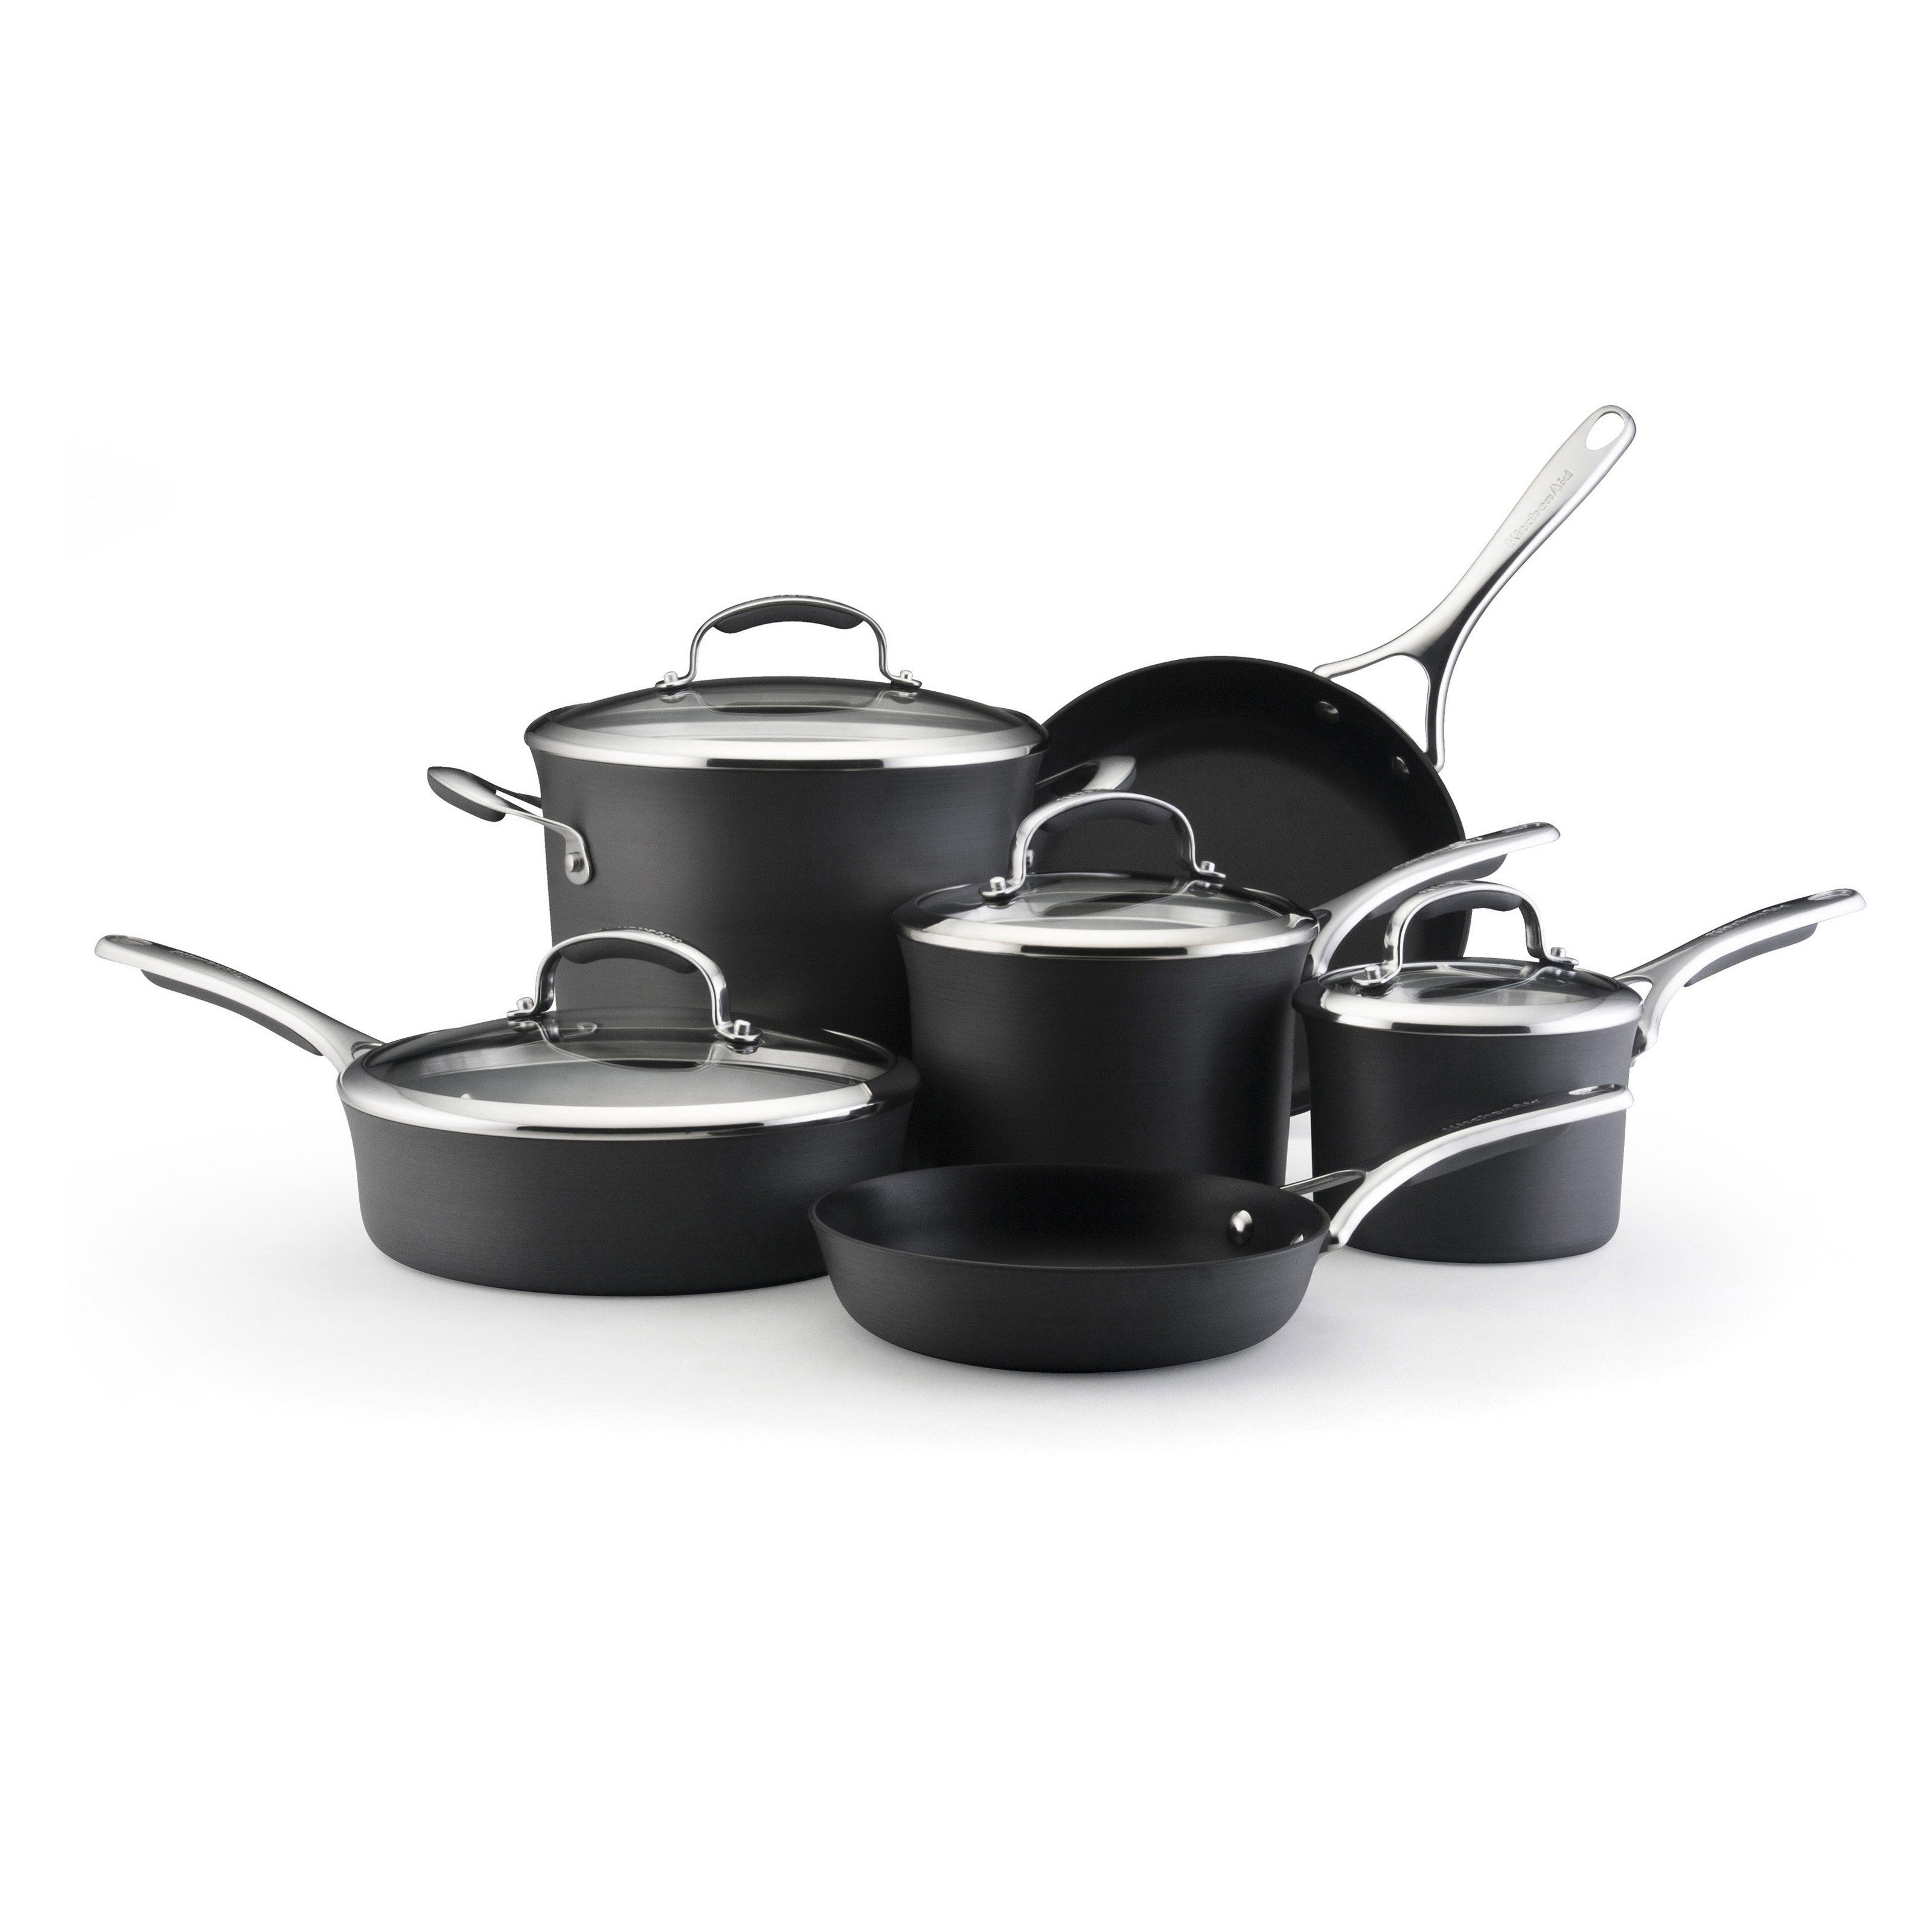 Have to have it. KitchenAid Gourmet Hard-Anodized Nonstick 10 Piece Cookware Set $179.99